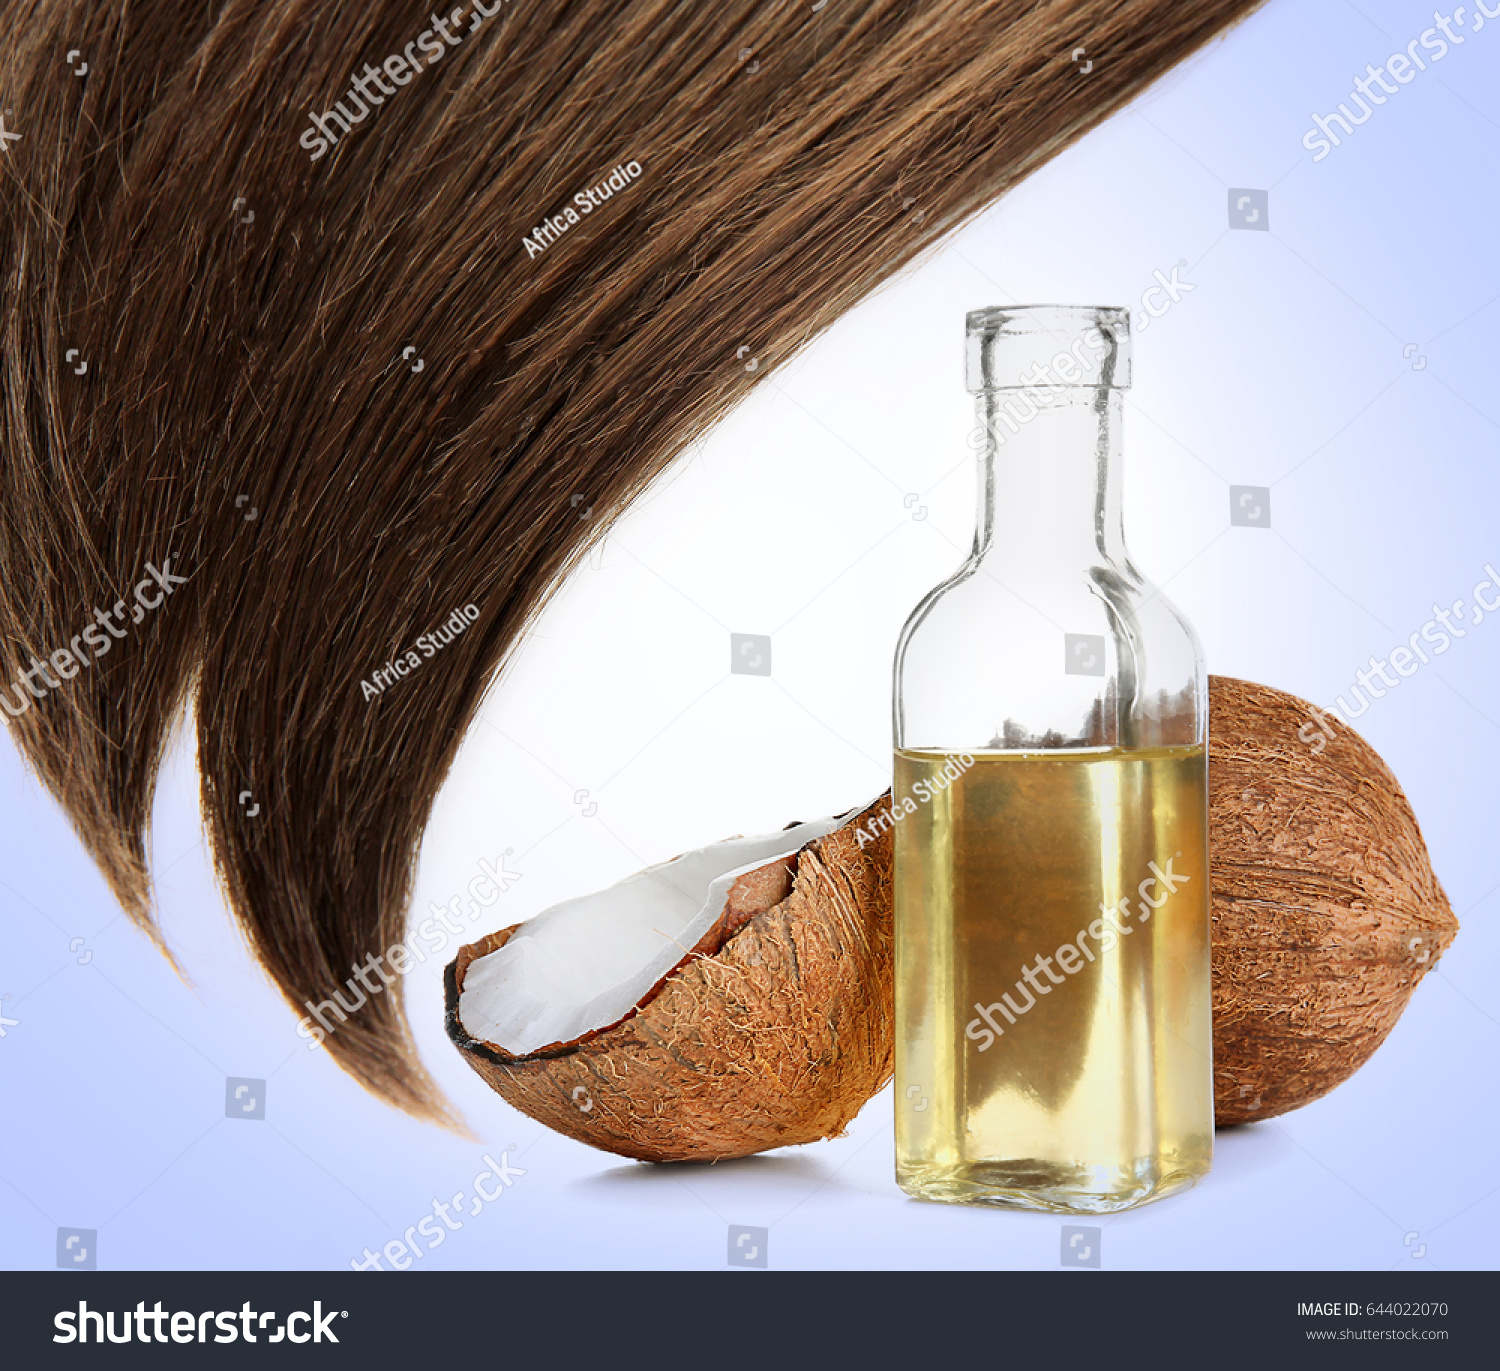 Shiny Hair Bottle Coconut Oil Nut Stock Photo Edit Now 644022070